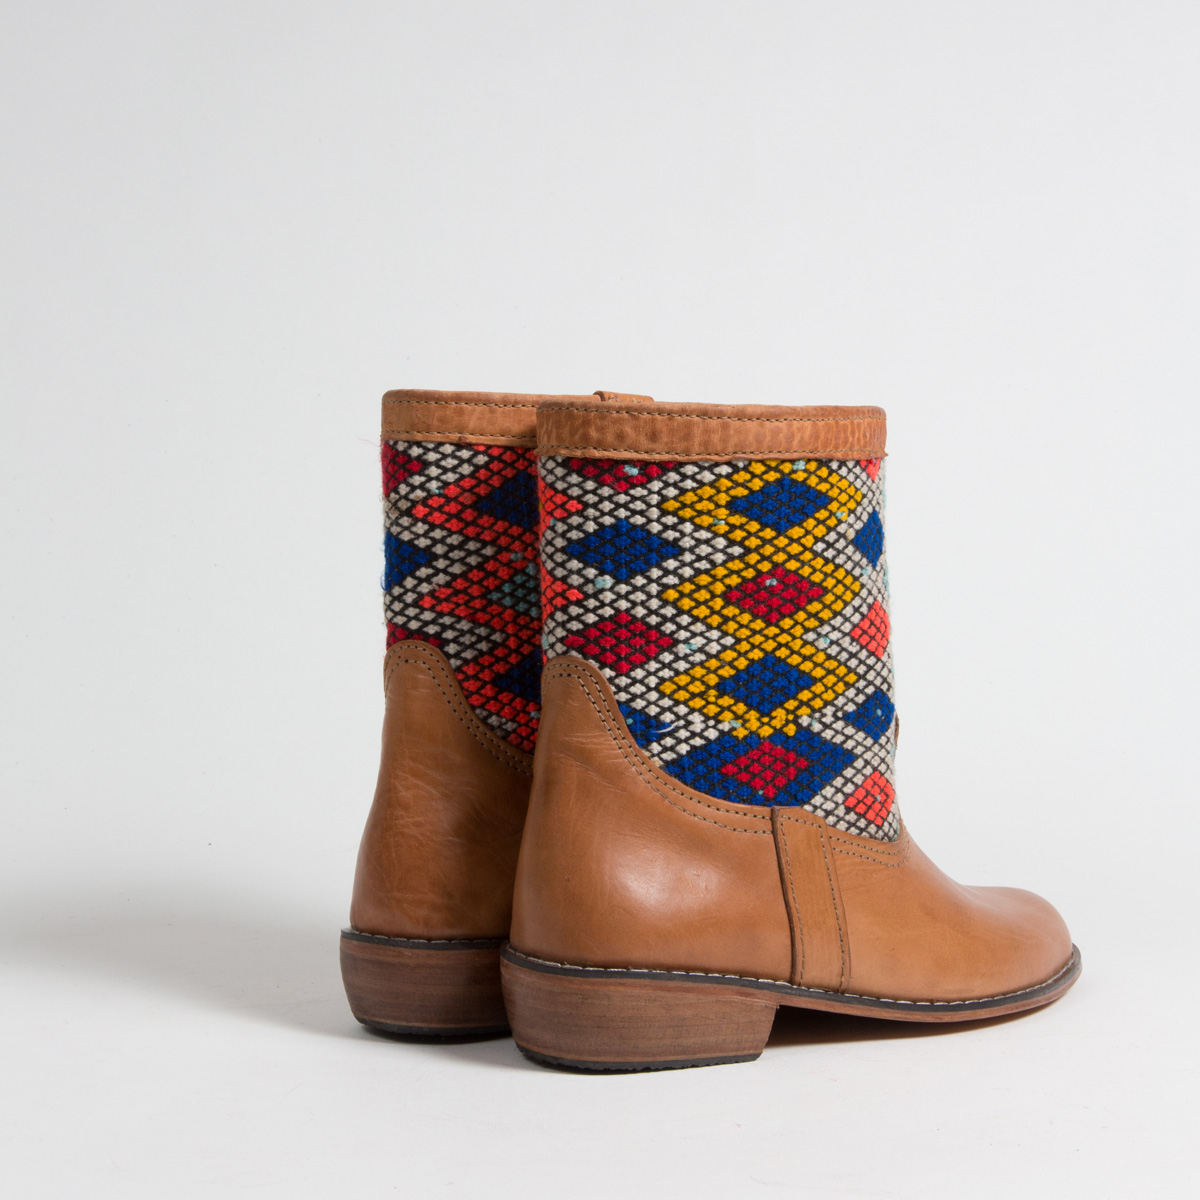 Bottines Kilim cuir mababouche artisanales (Réf. MOI-38)